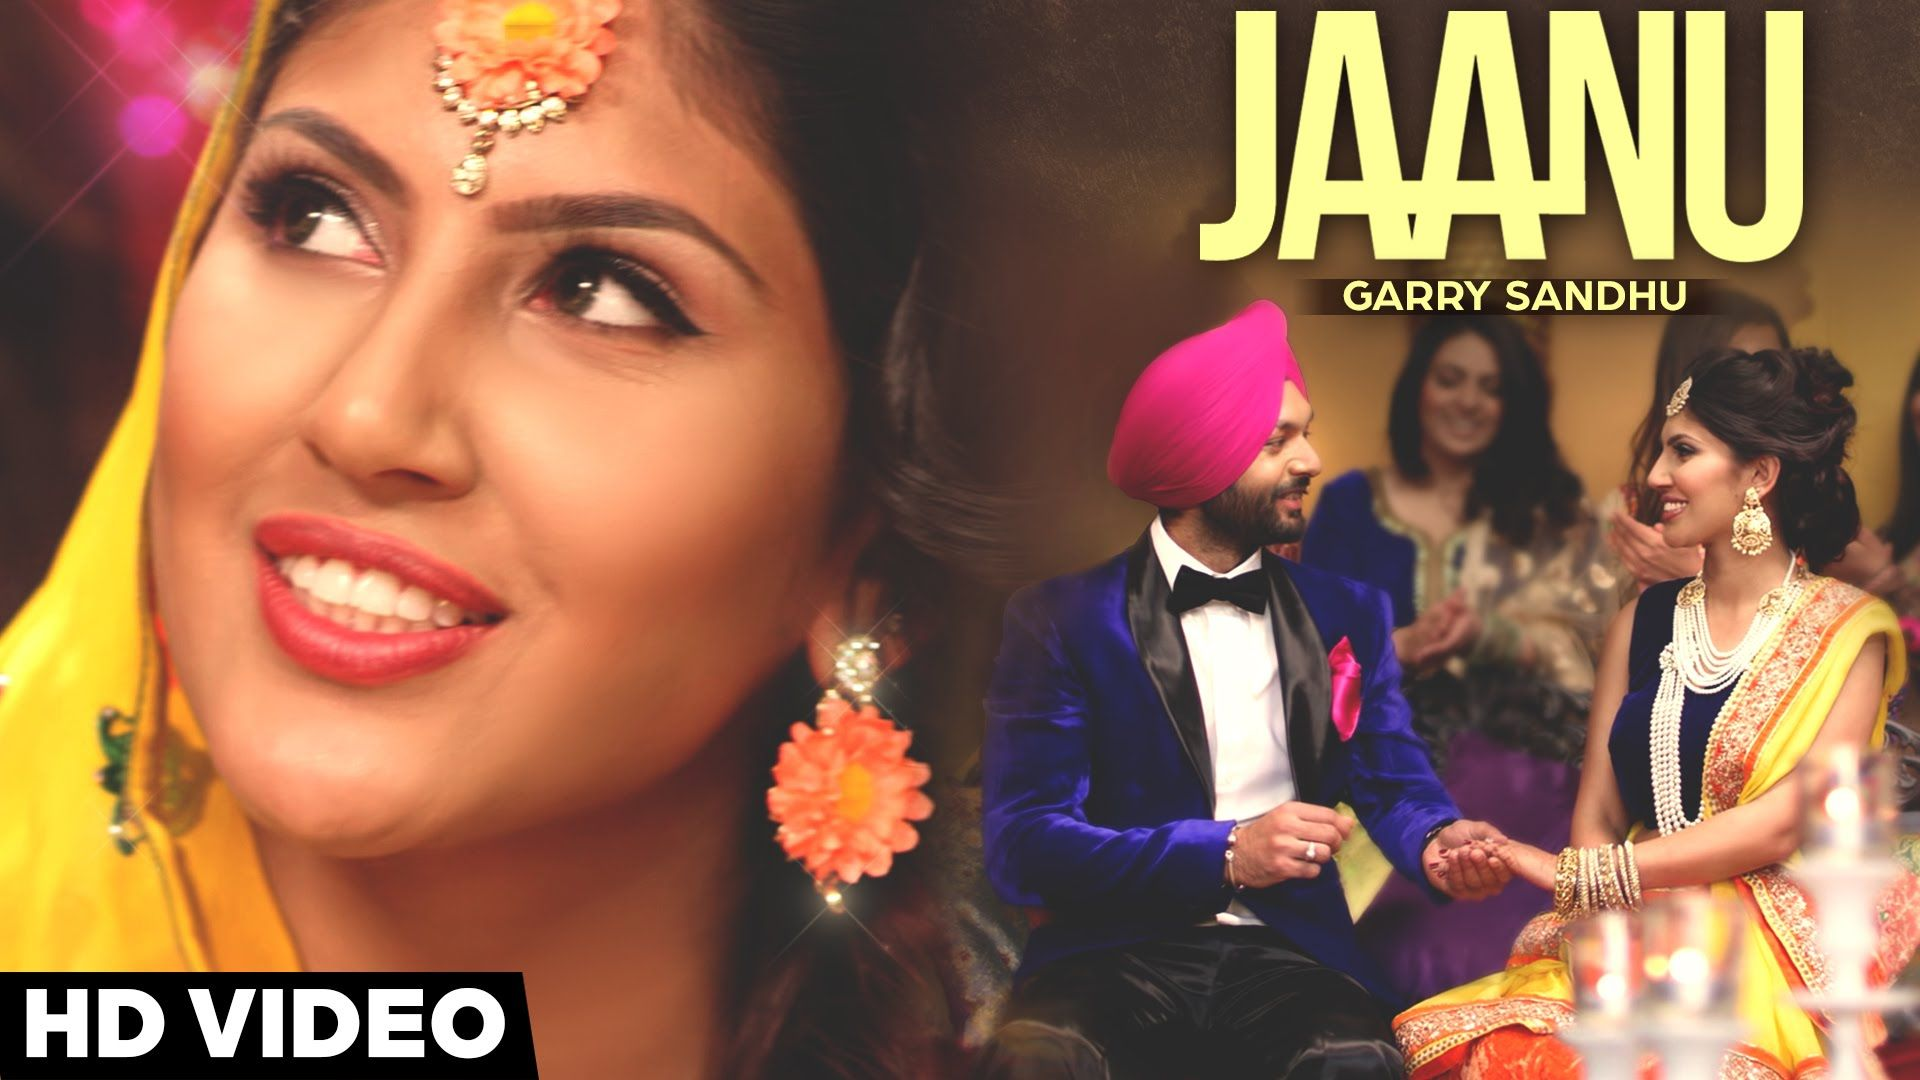 Latest video songs image by saim123 on MP3 SONGS LATEST